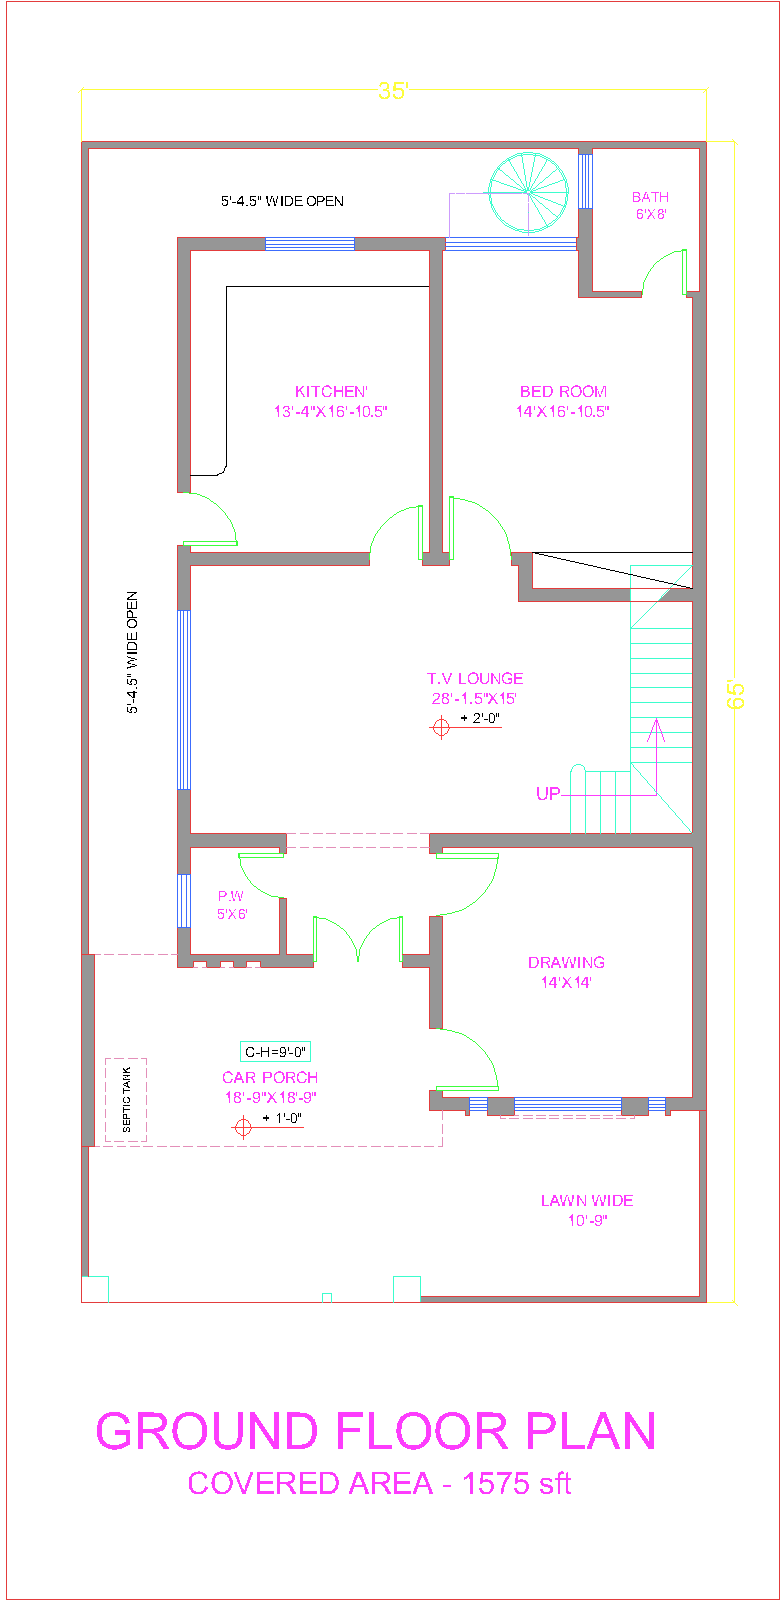 3d front 10 marla house plan layout Free house map design images